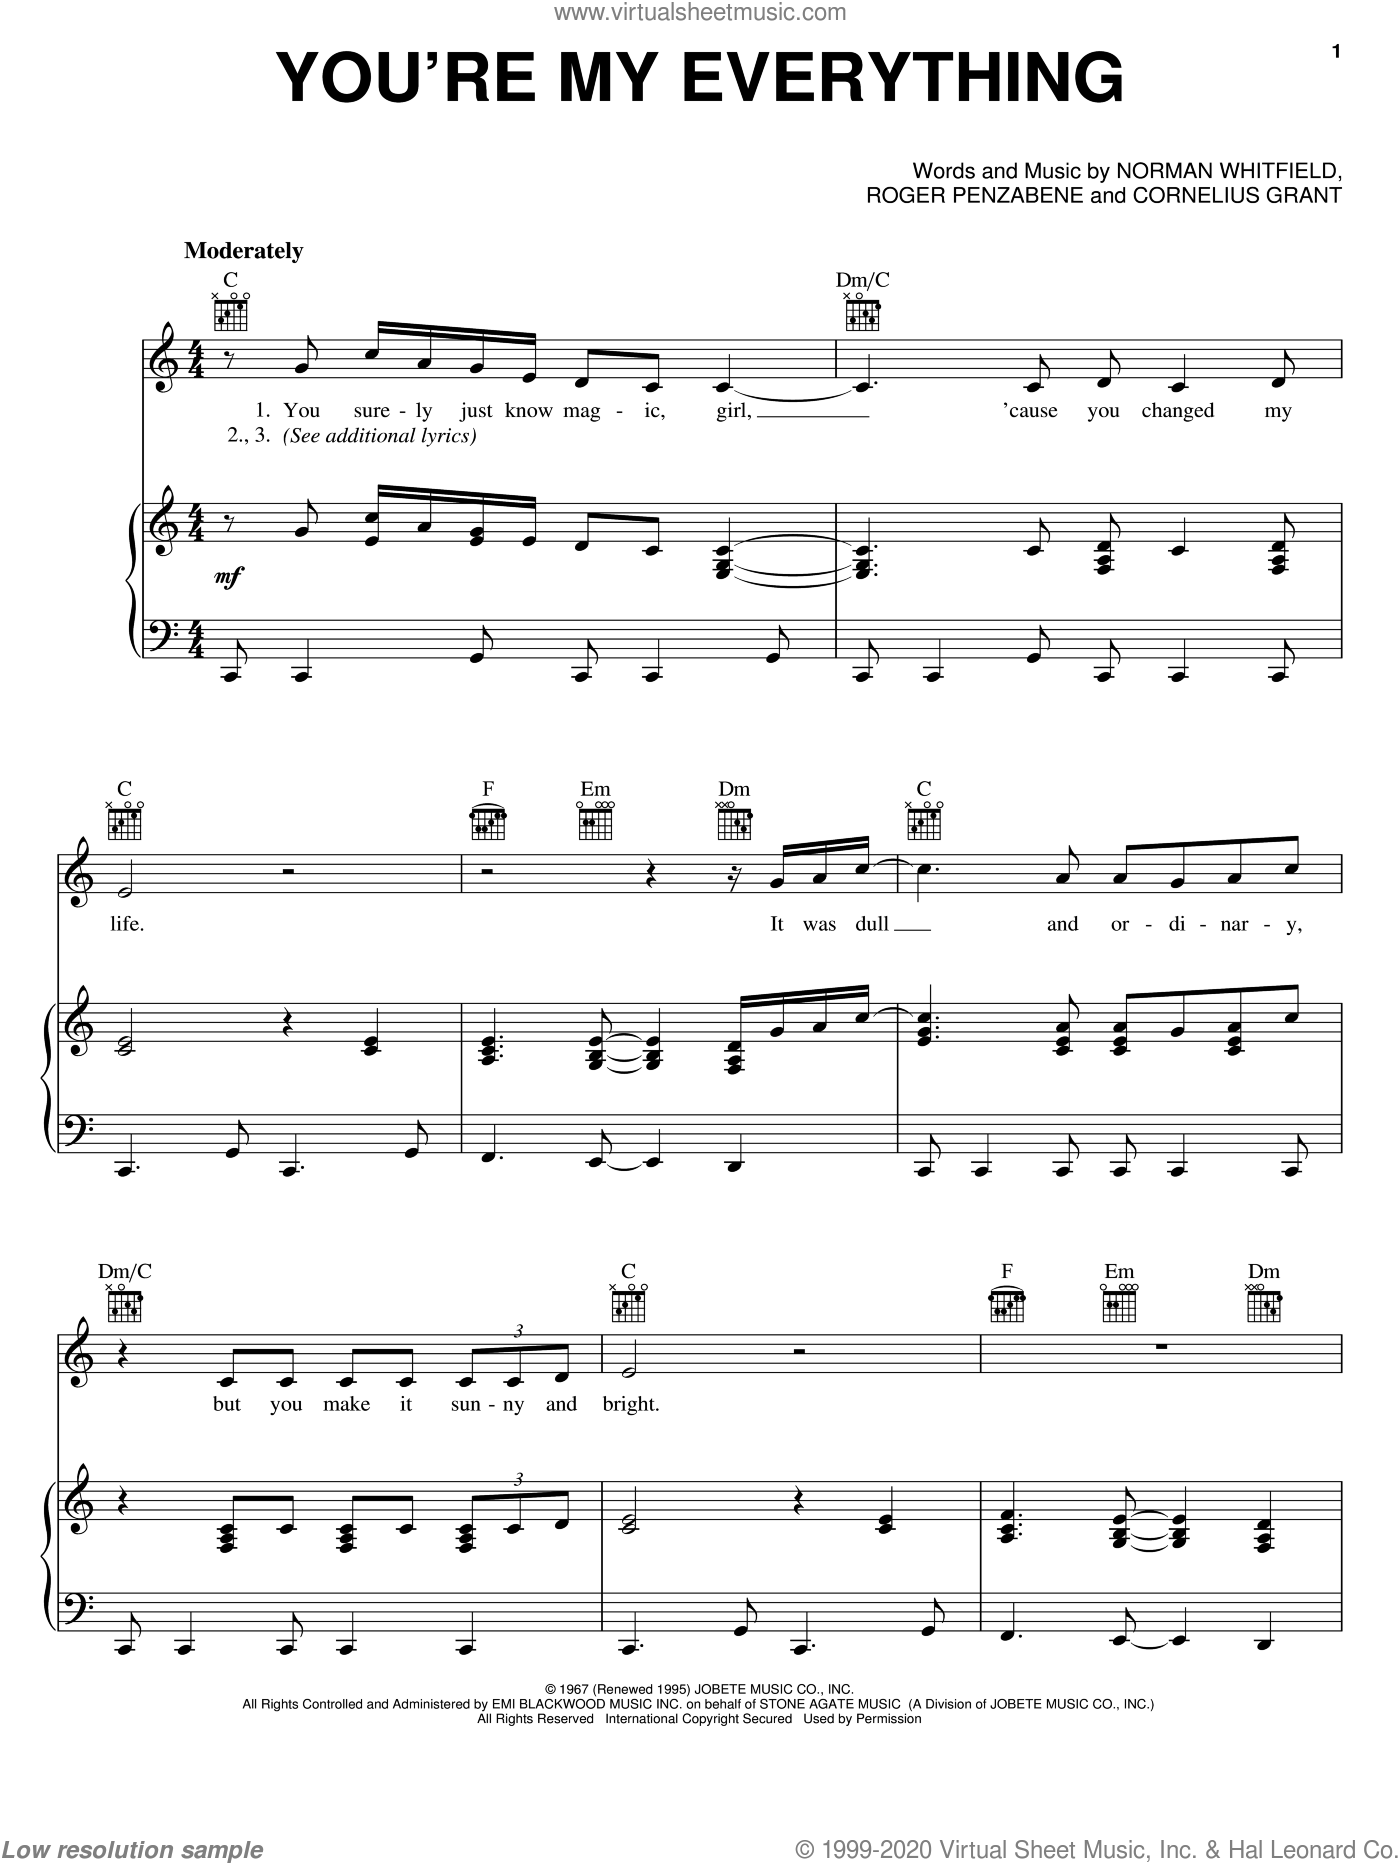 You're My Everything sheet music for voice, piano or guitar by The Temptations, Cornelius Grant, Norman Whitfield and Roger Penzabene, intermediate skill level